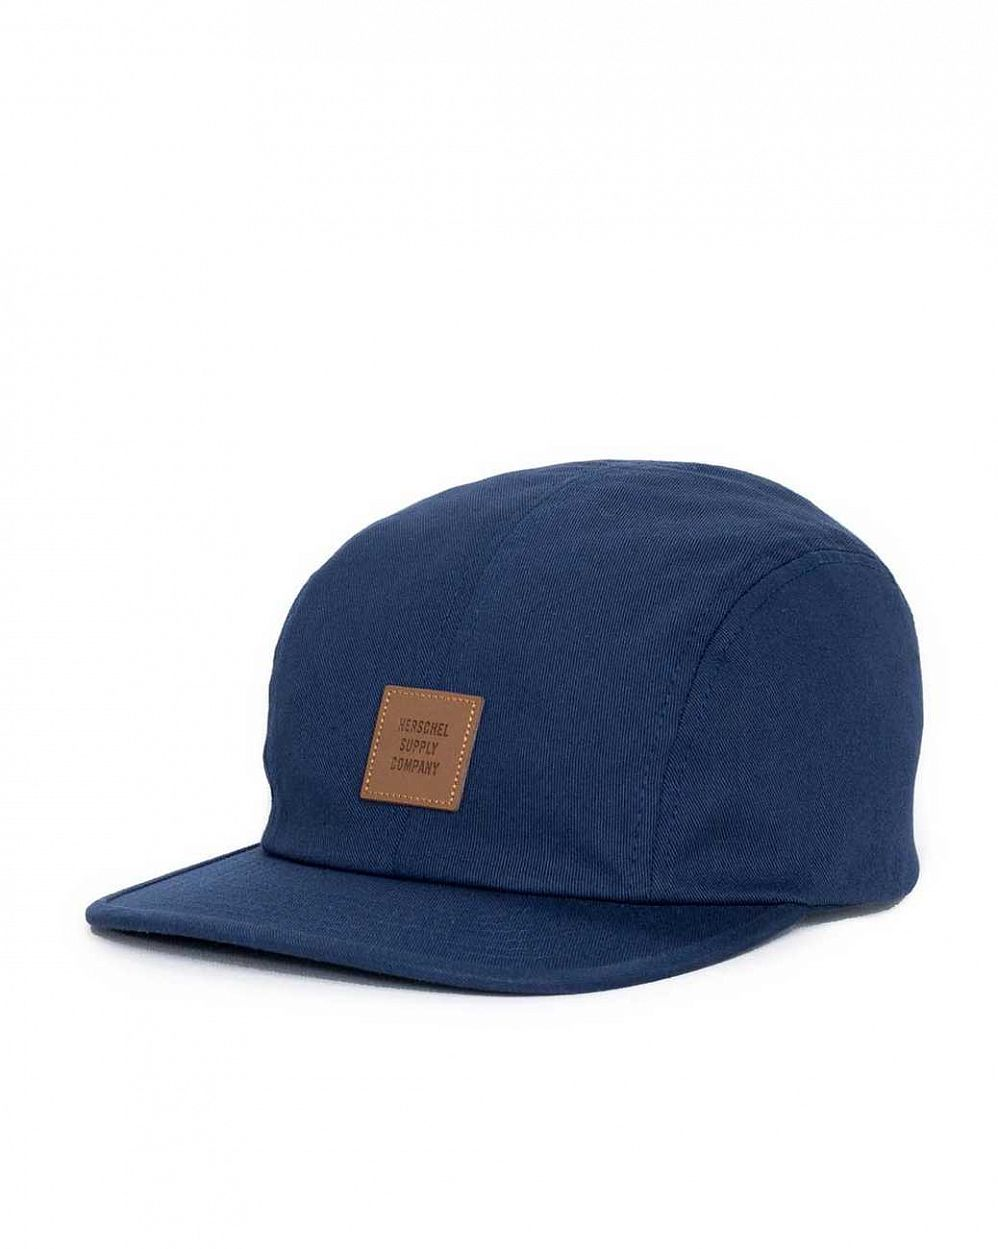 Бейсболка 4 панели Herschel Supply Co Owen Cap NAVY отзывы